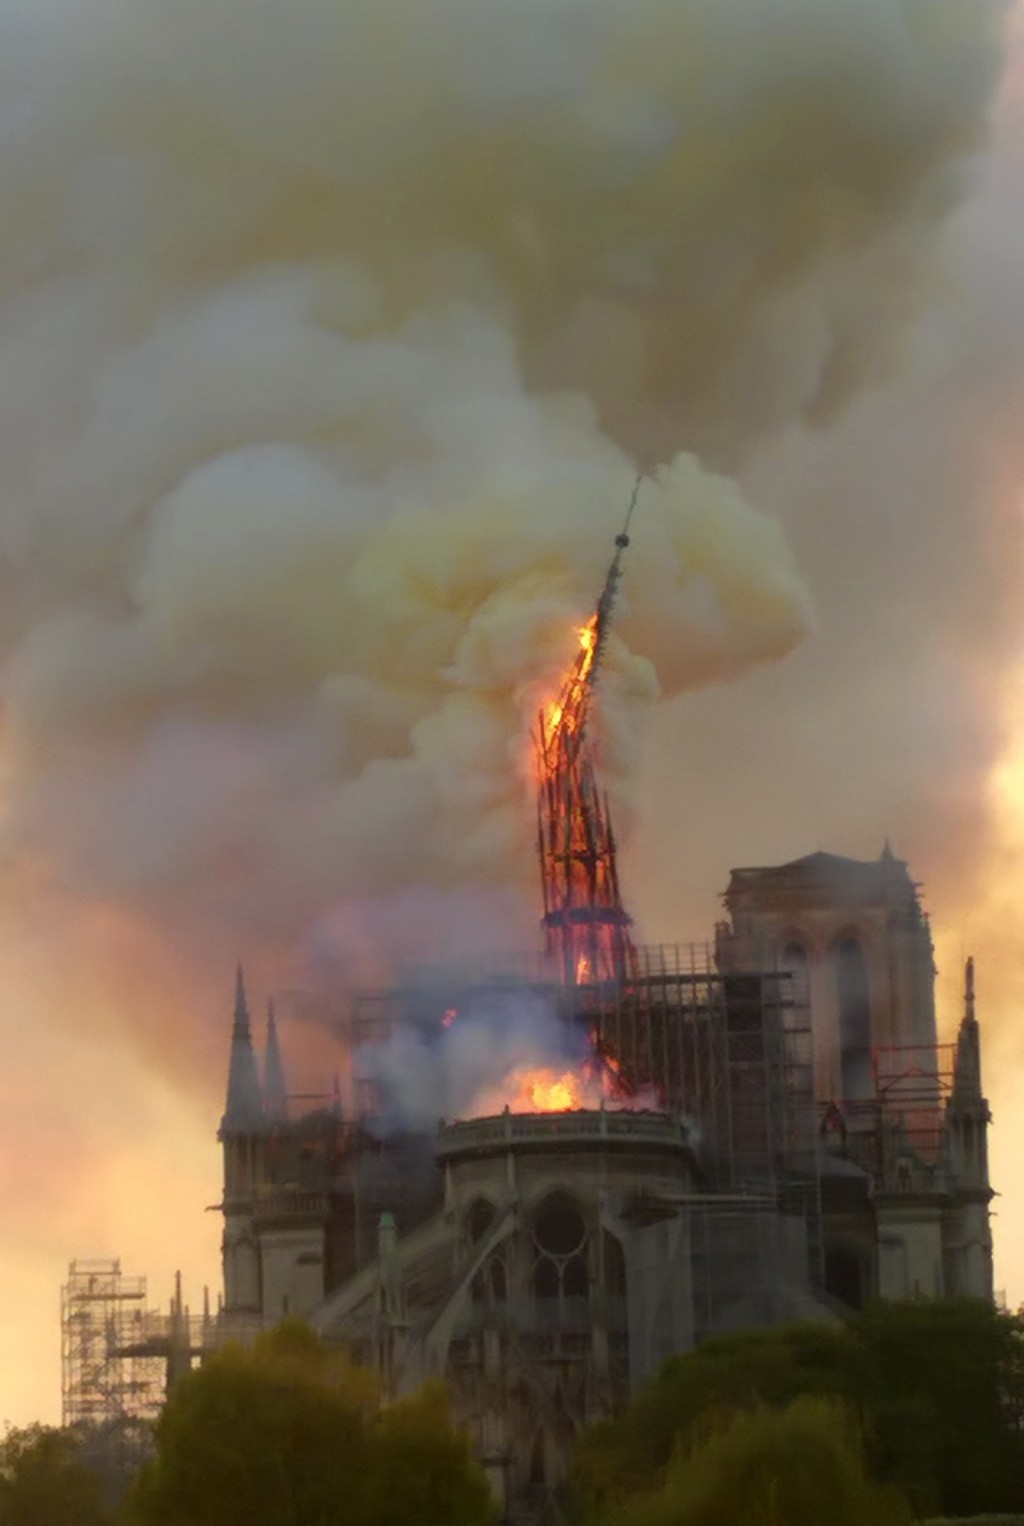 Flames and smoke rise as the spire of Notre Dame cathedral collapses in Paris, Monday, April 15, 2019. A catastrophic fire engulfed the upper reaches